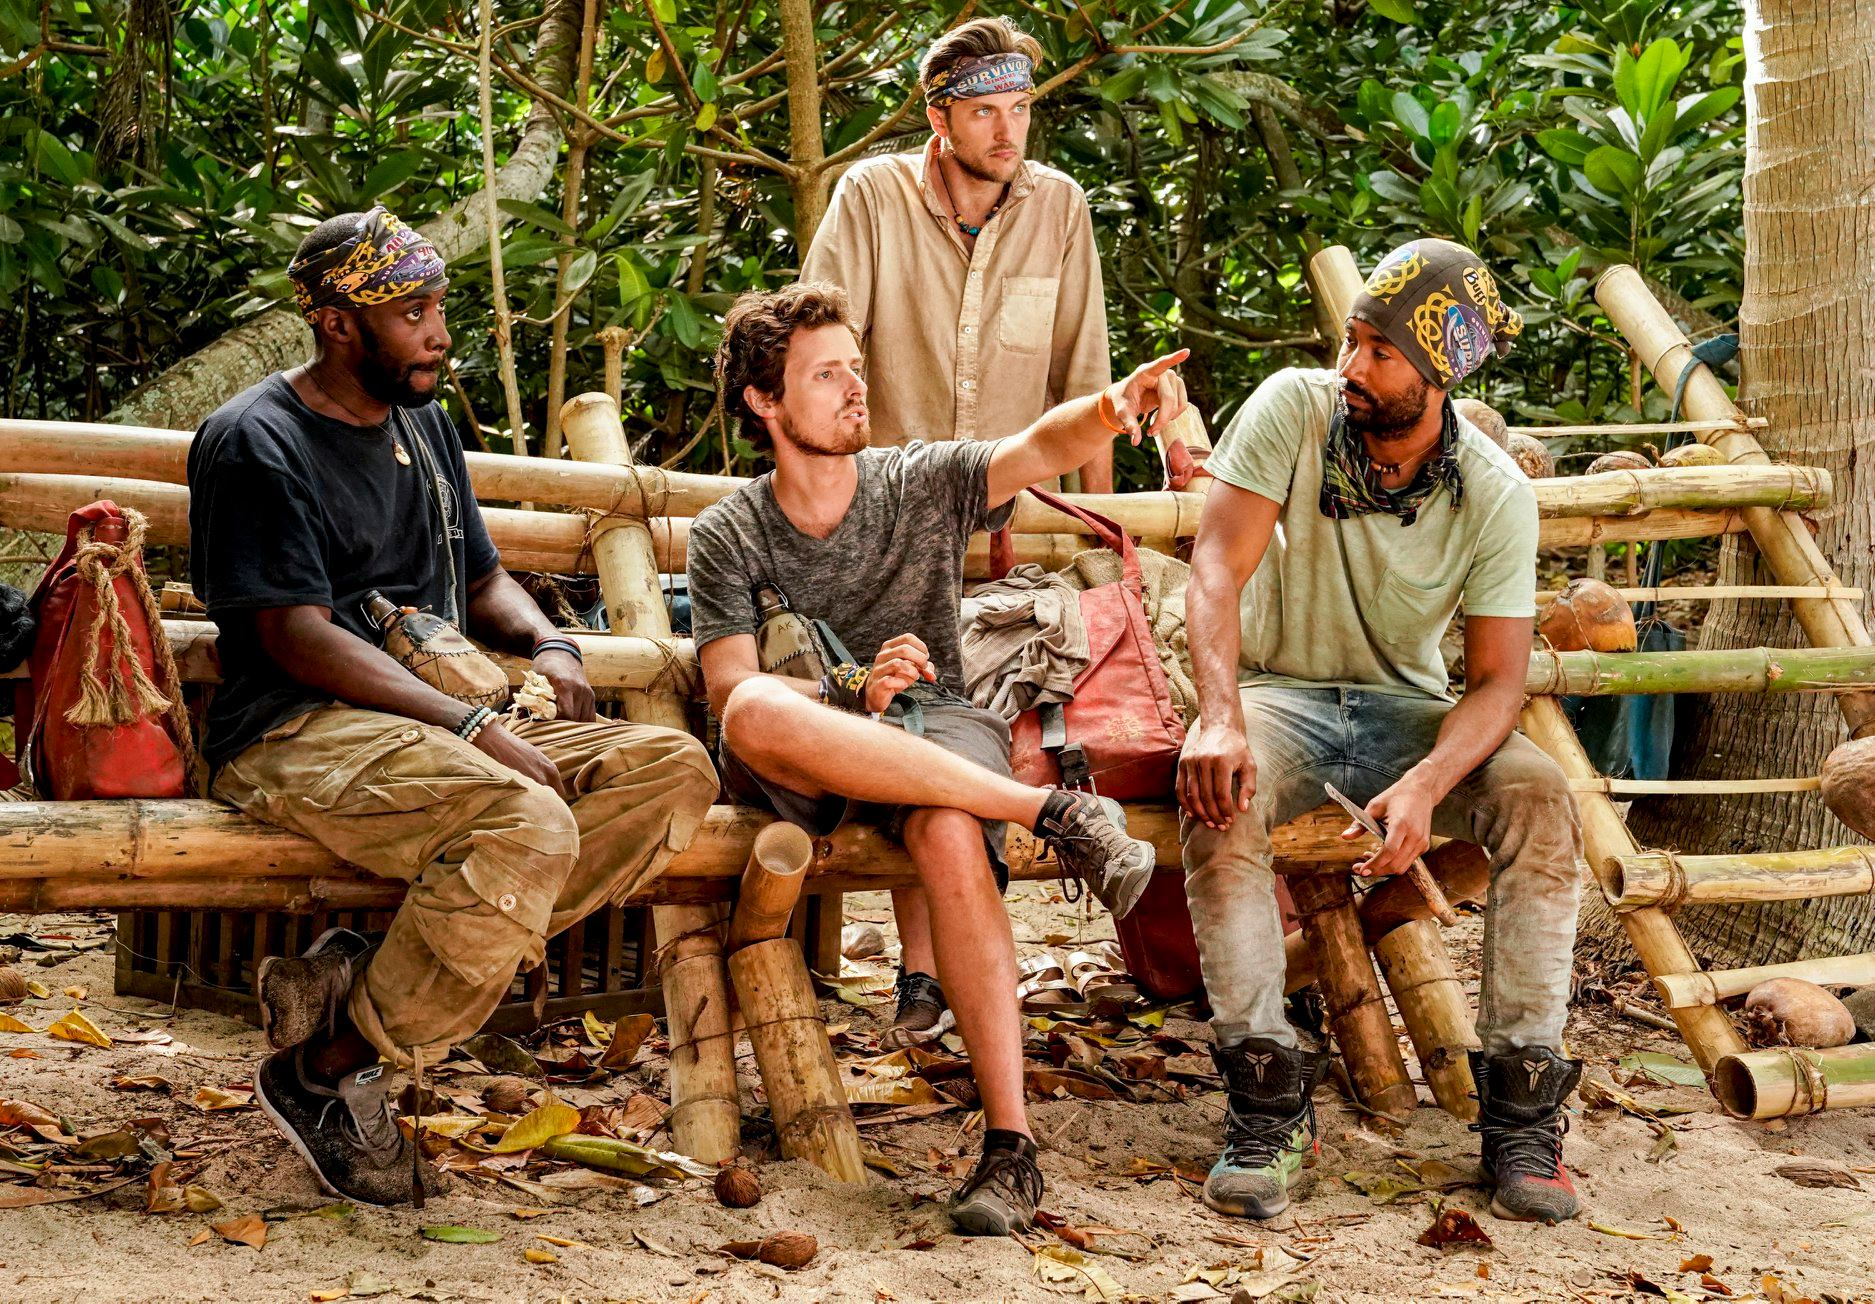 Survivor Live Recap Season 40 Episode 8 – This Is Where the Battle Begins